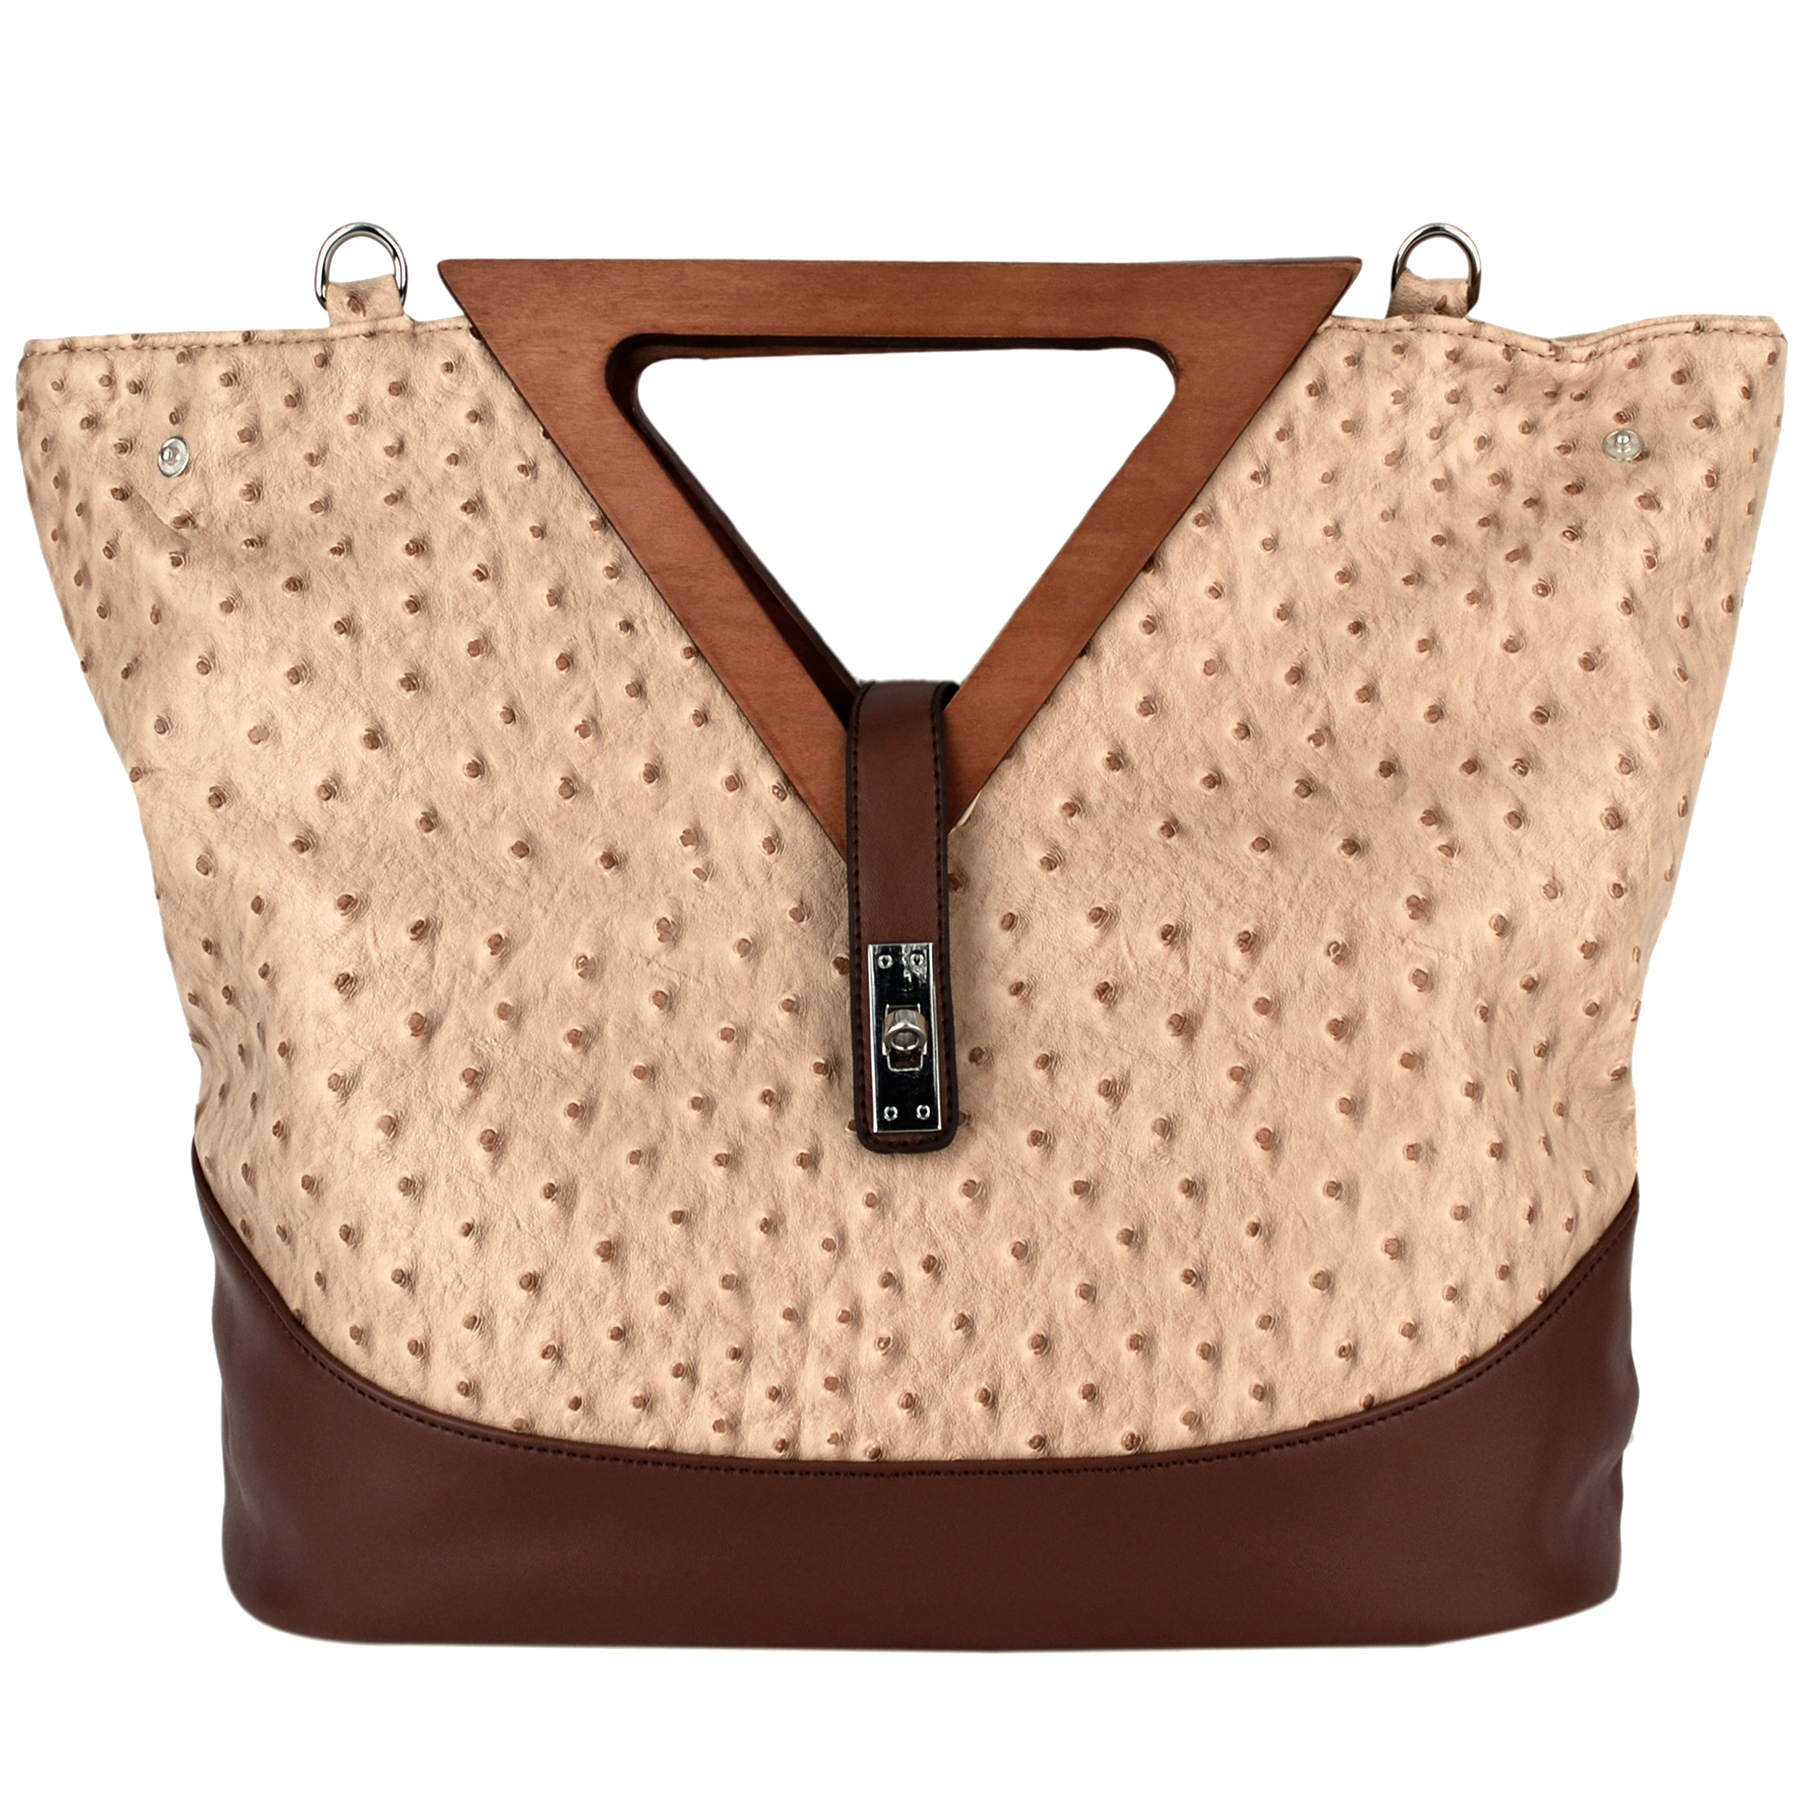 mg-collection-kora-wood-triangle-handbag-jsh-l20-1572tn-3.jpg